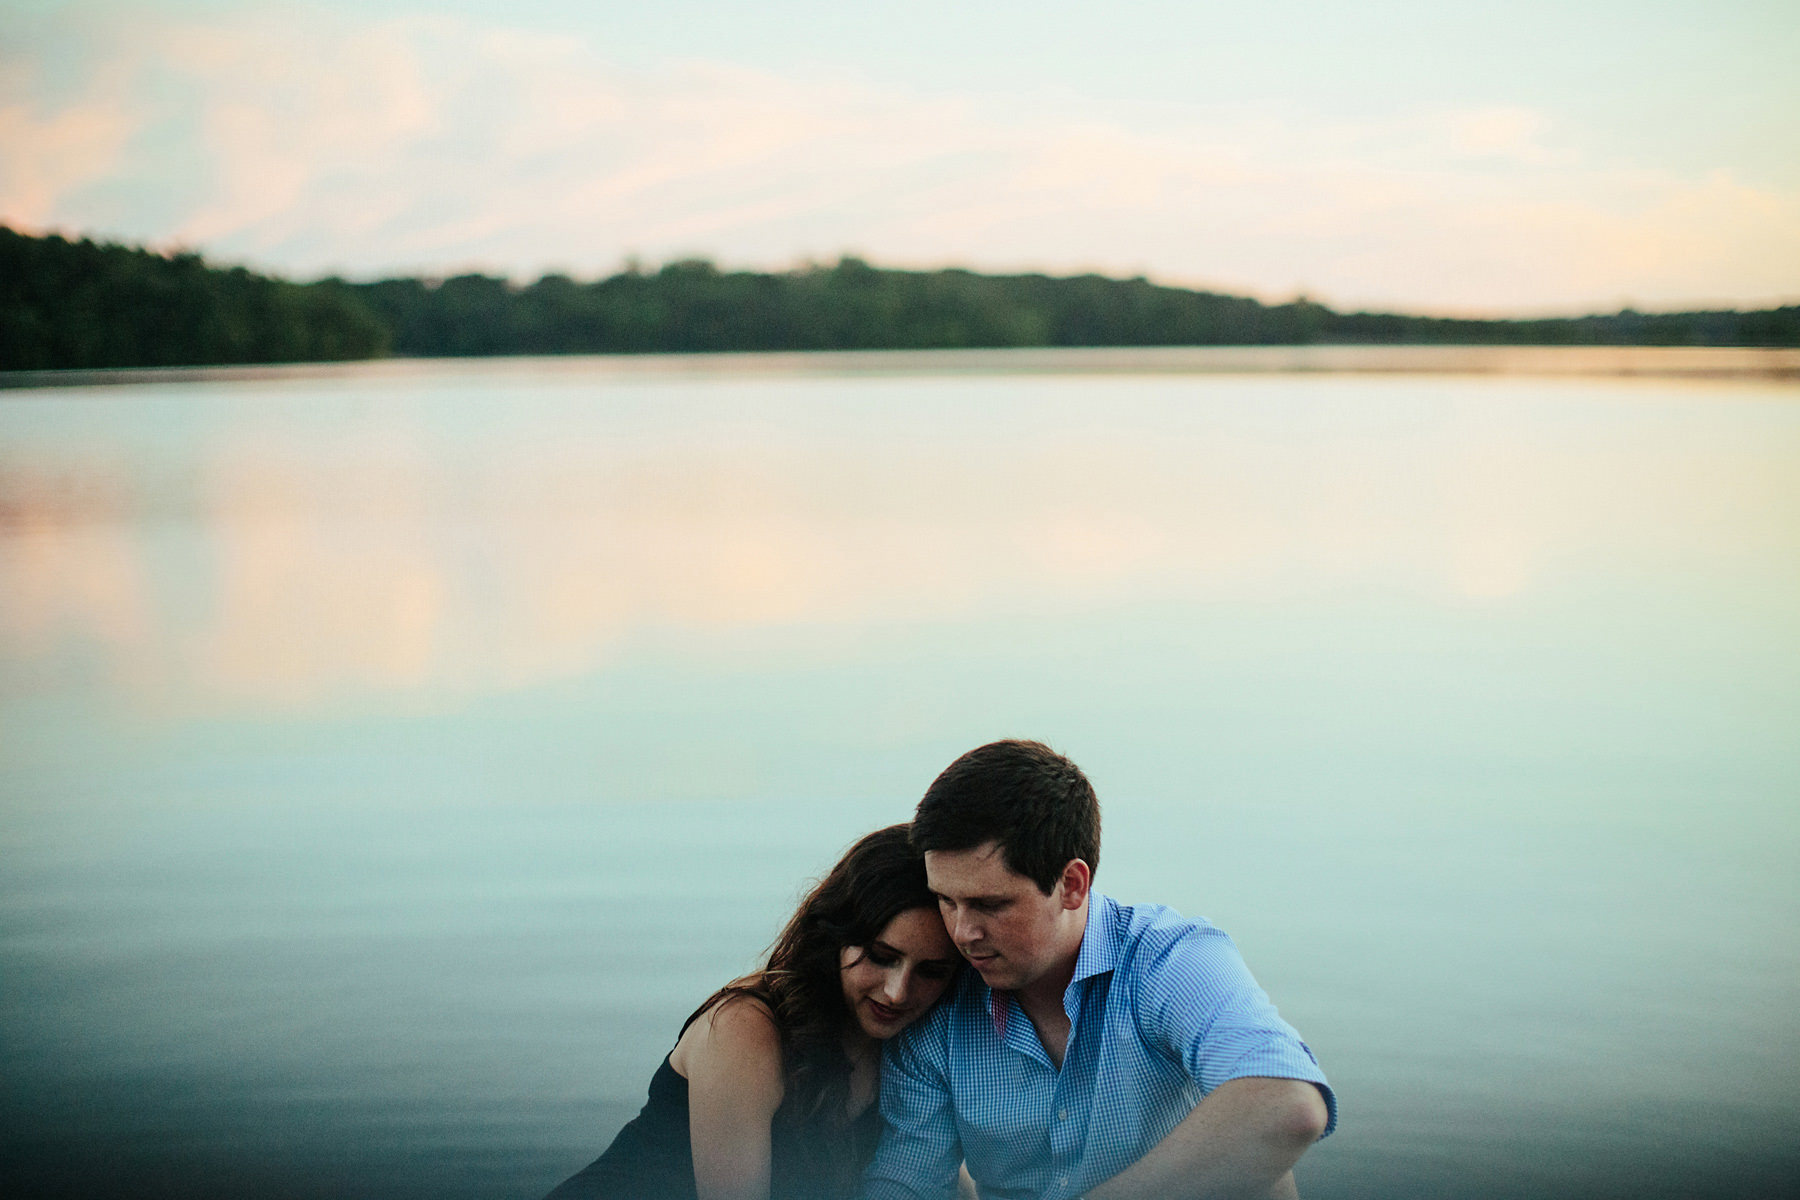 28_Shawnee Mission Park Lake Engagement Session Kansas City, Missouri_Kindling Wedding Photography.JPG